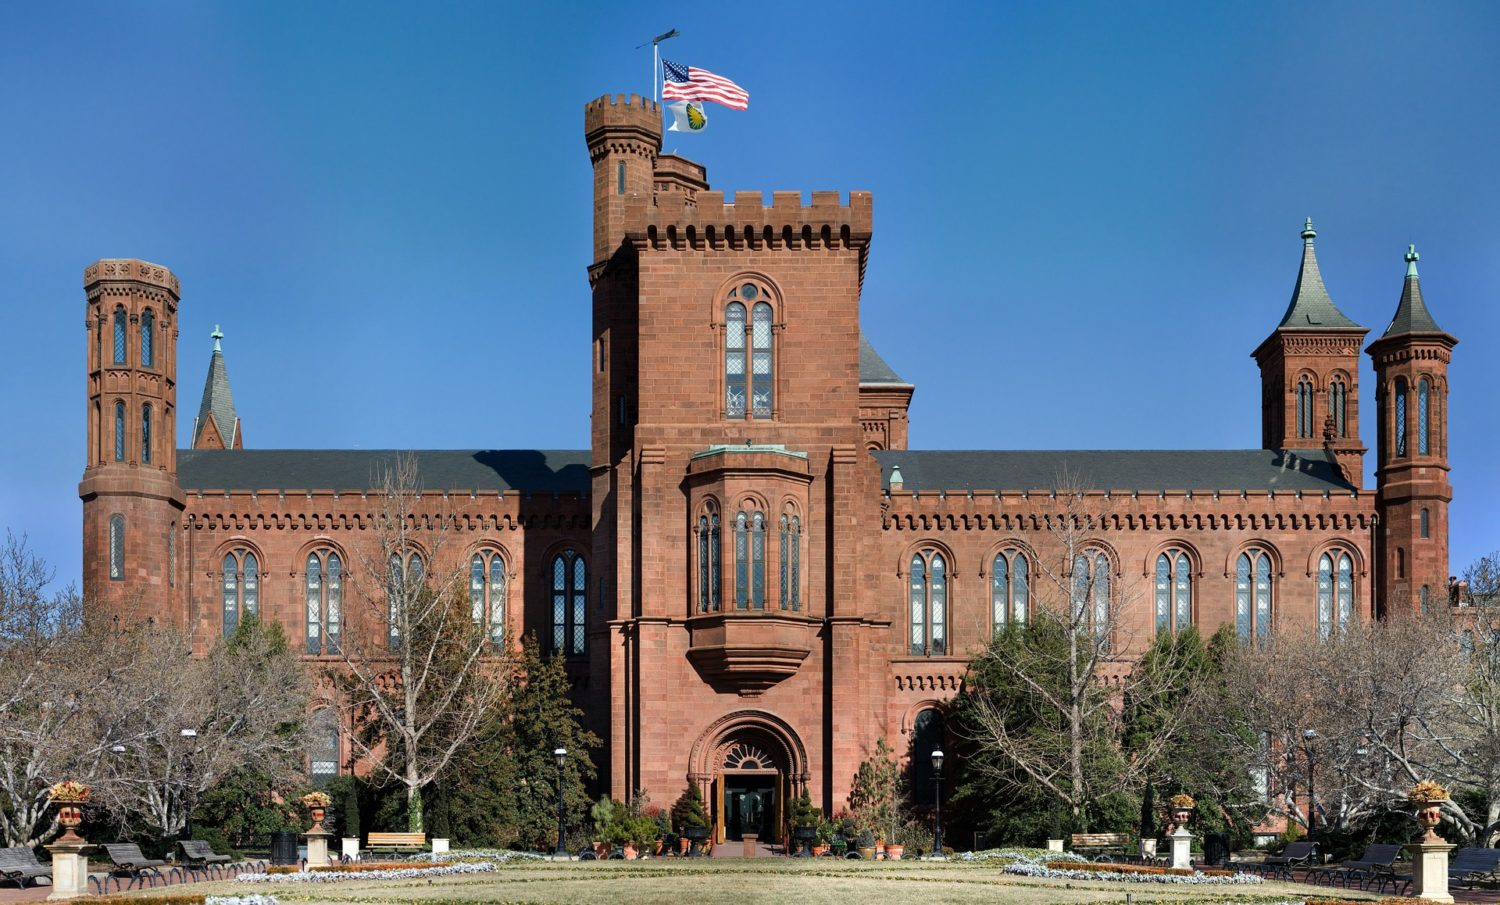 Smithsonian Institution, Washington, D.C.